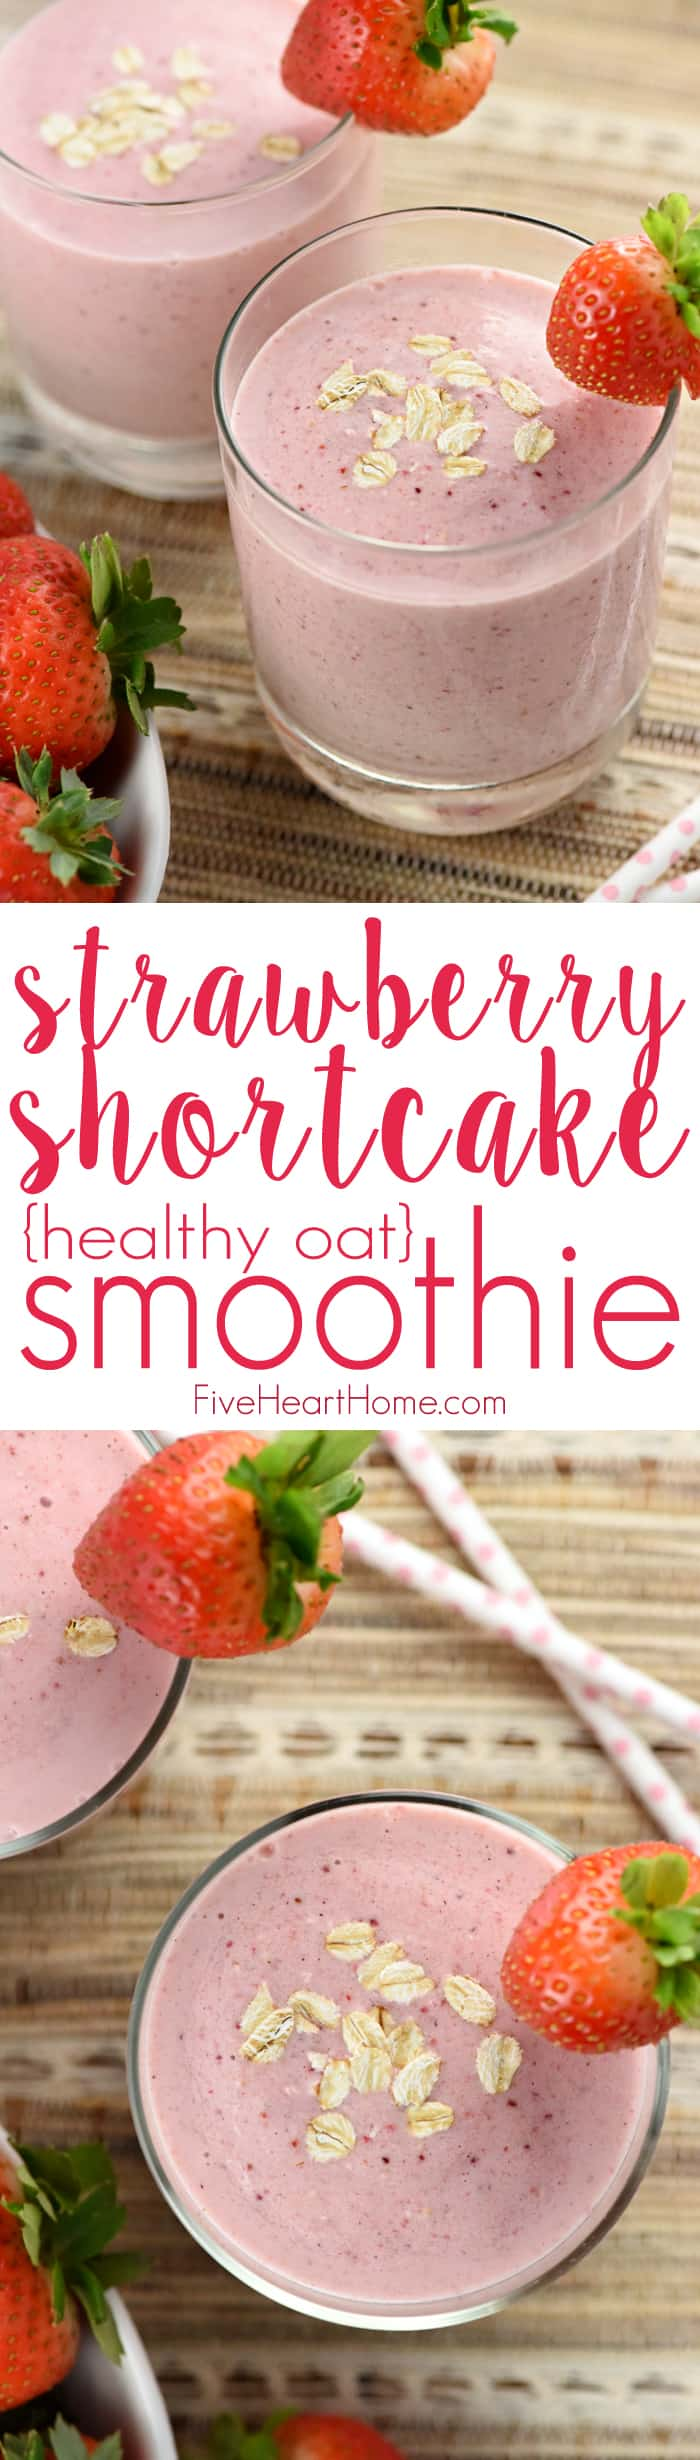 Strawberry Shortcake Smoothie ~ this healthy oat smoothie boasts fiber, protein, and vitamins yet tastes like a freshly baked treat! | FiveHeartHome.com